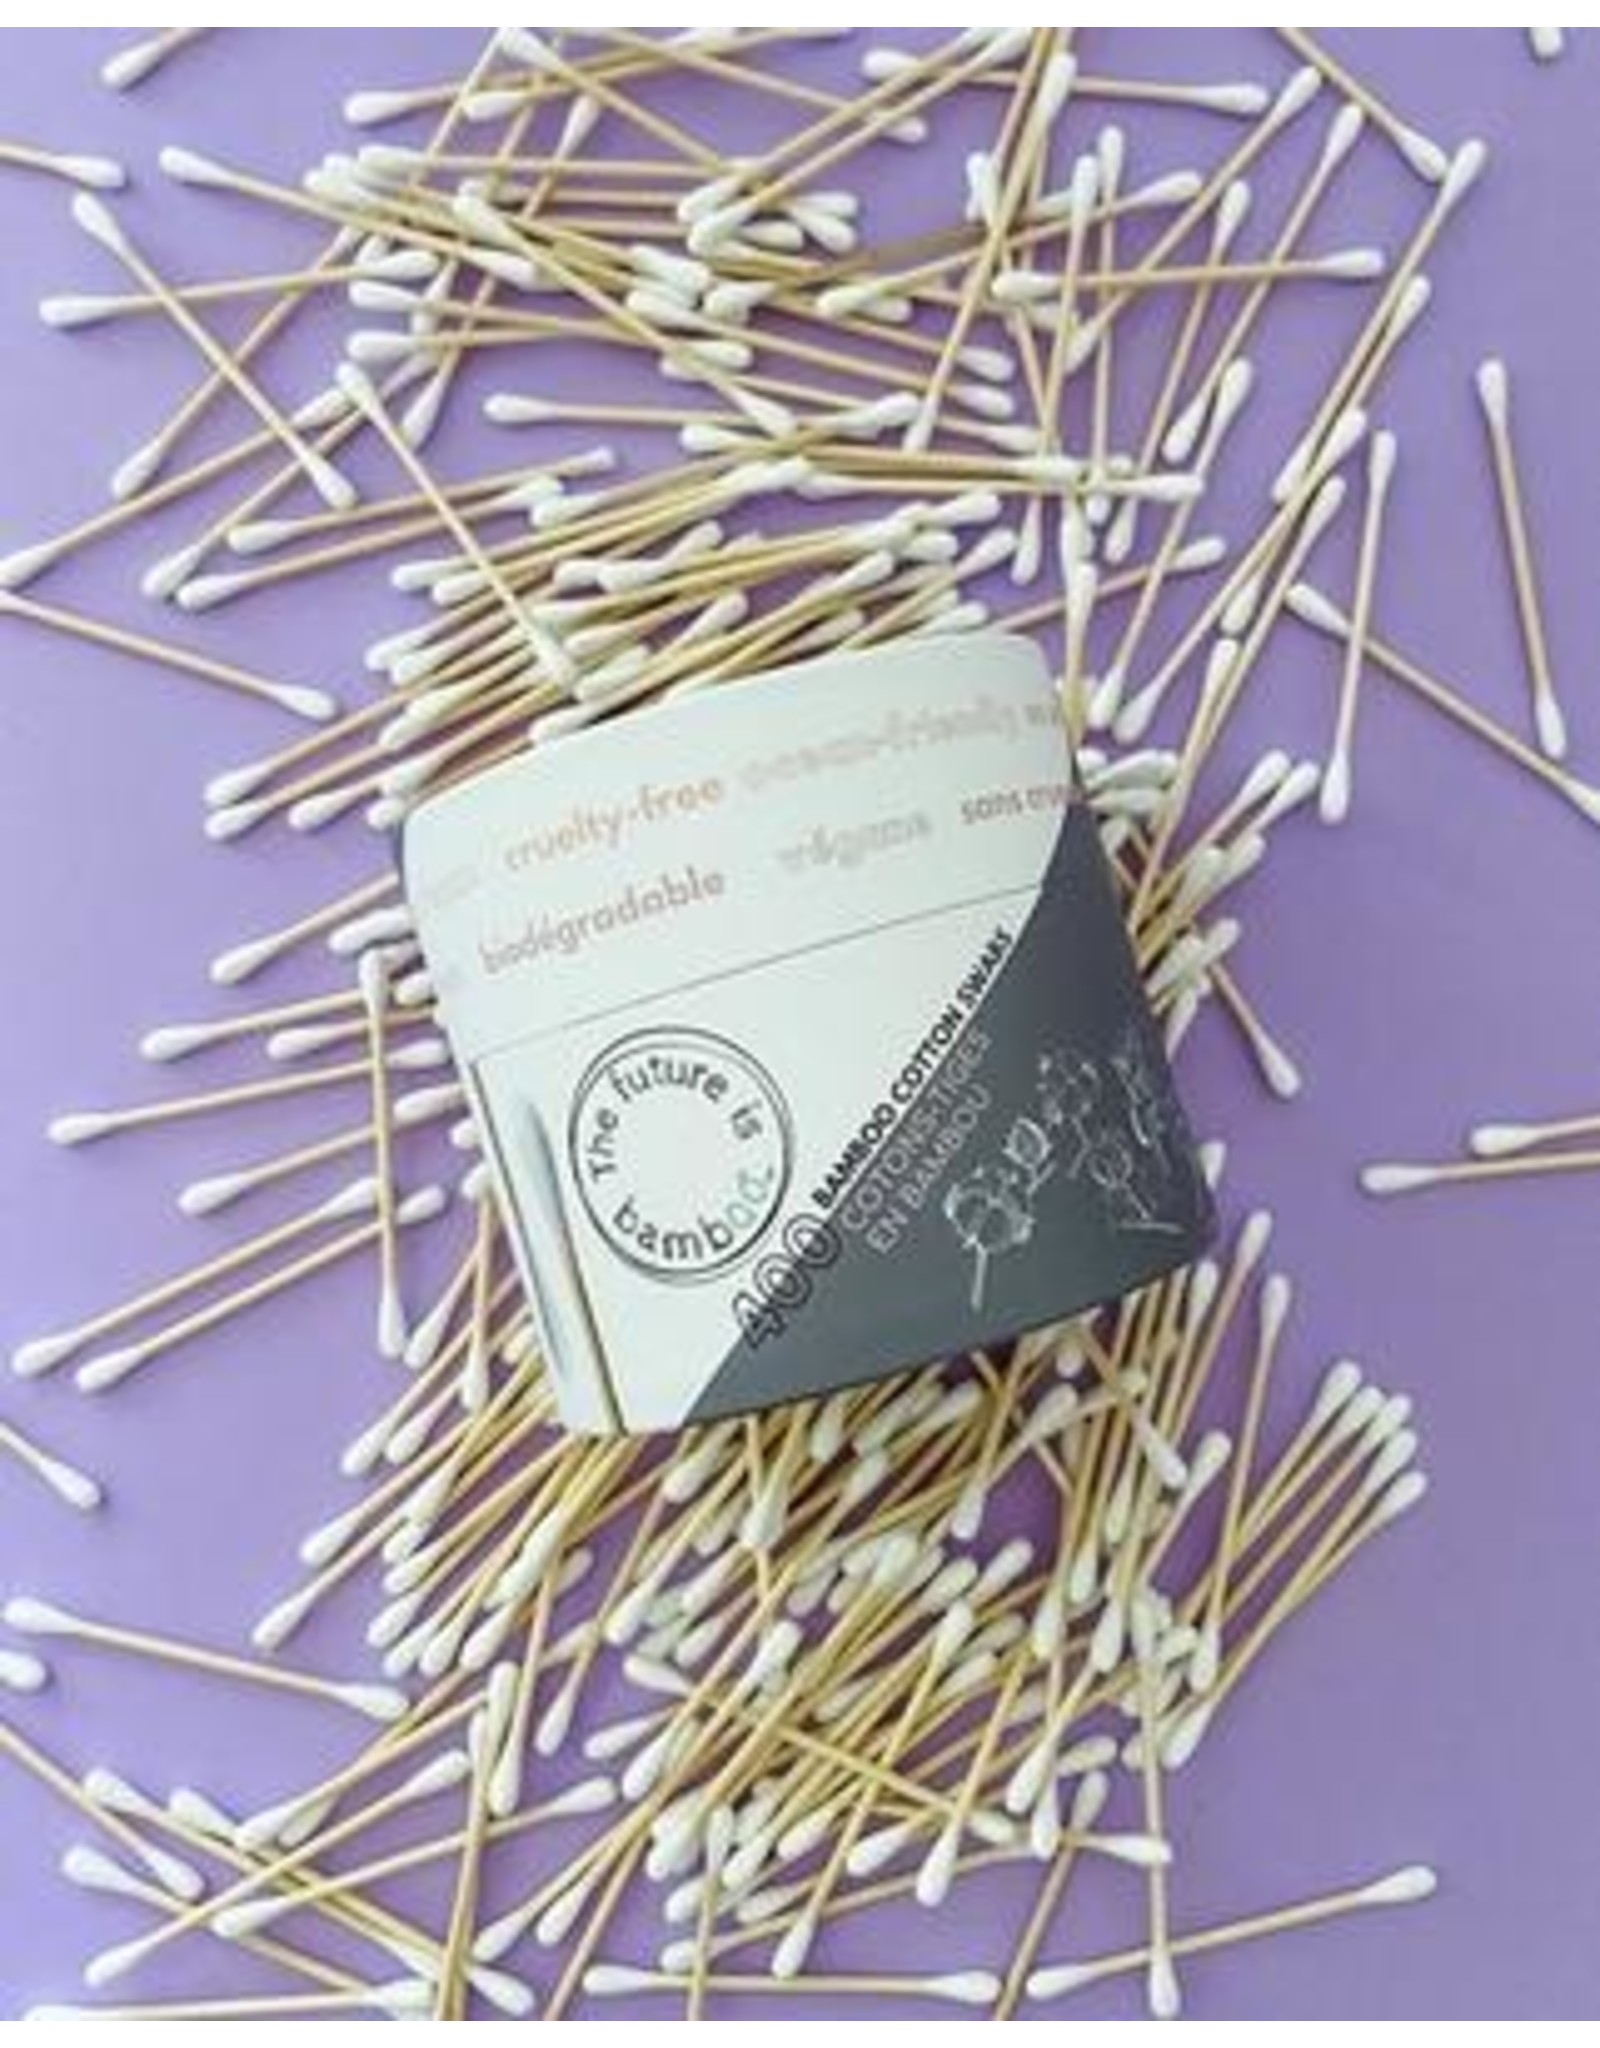 The Future is Bamboo Biodegradable Cotton Swabs (400 counts)